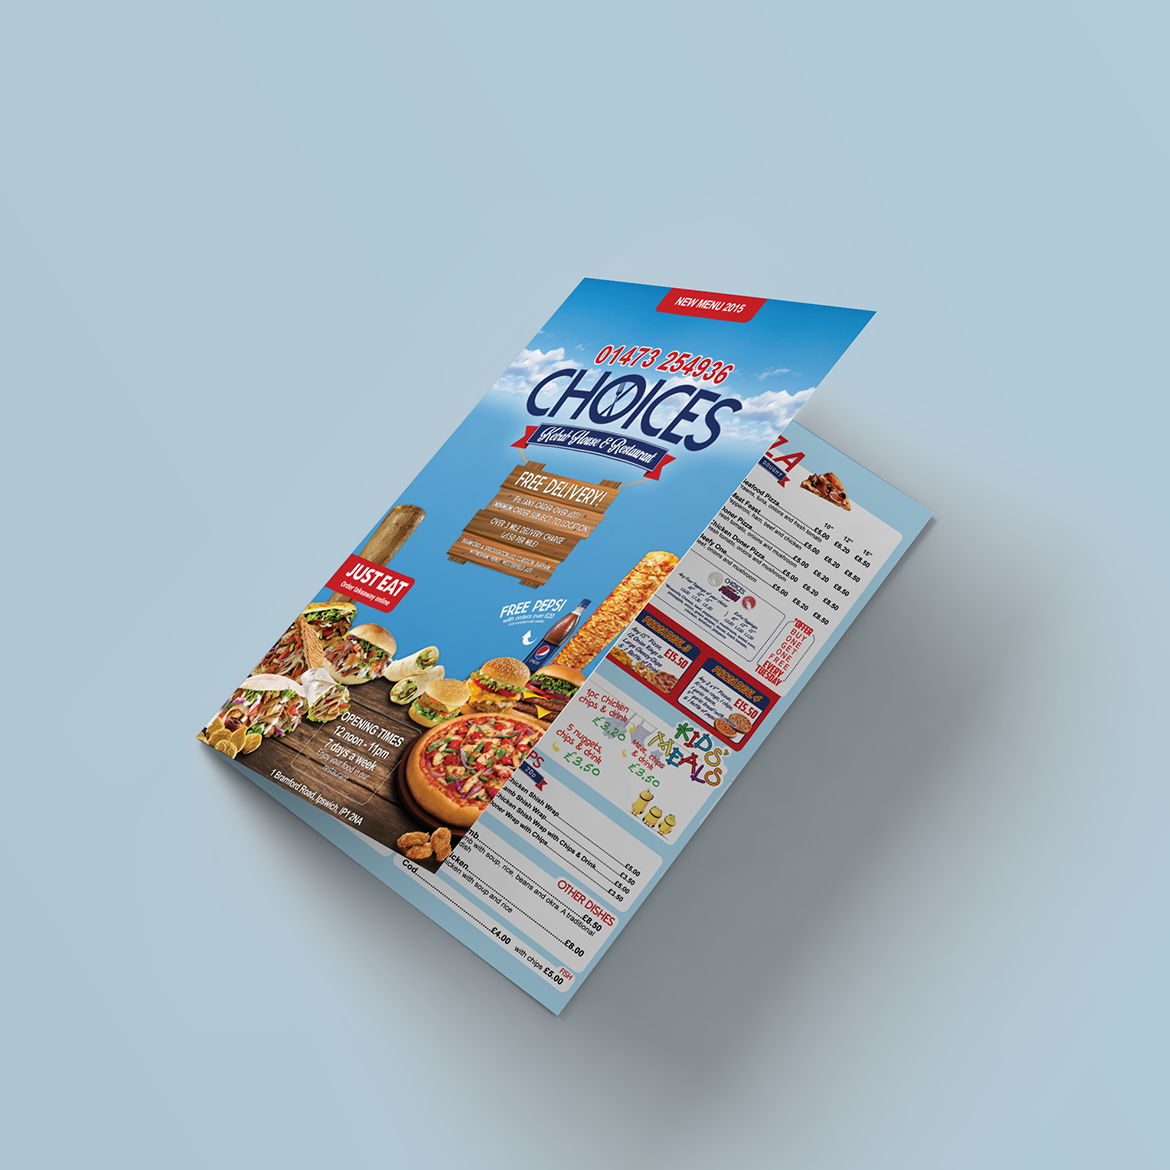 Choices Kebab House menu design